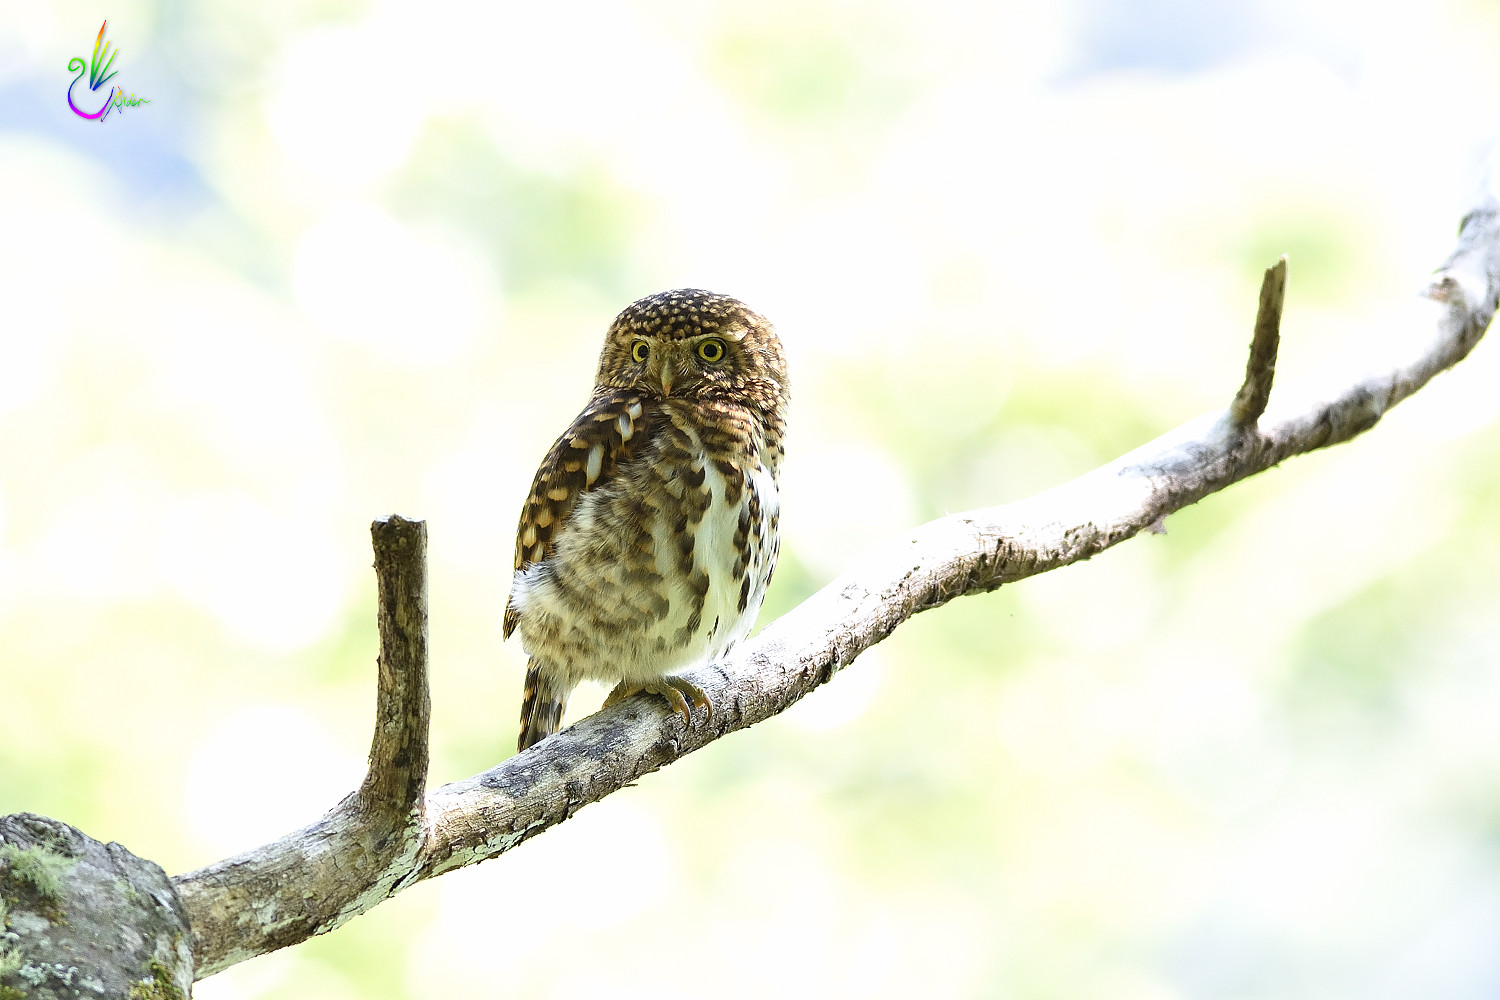 Collared_Pigmy_Owlet_4828